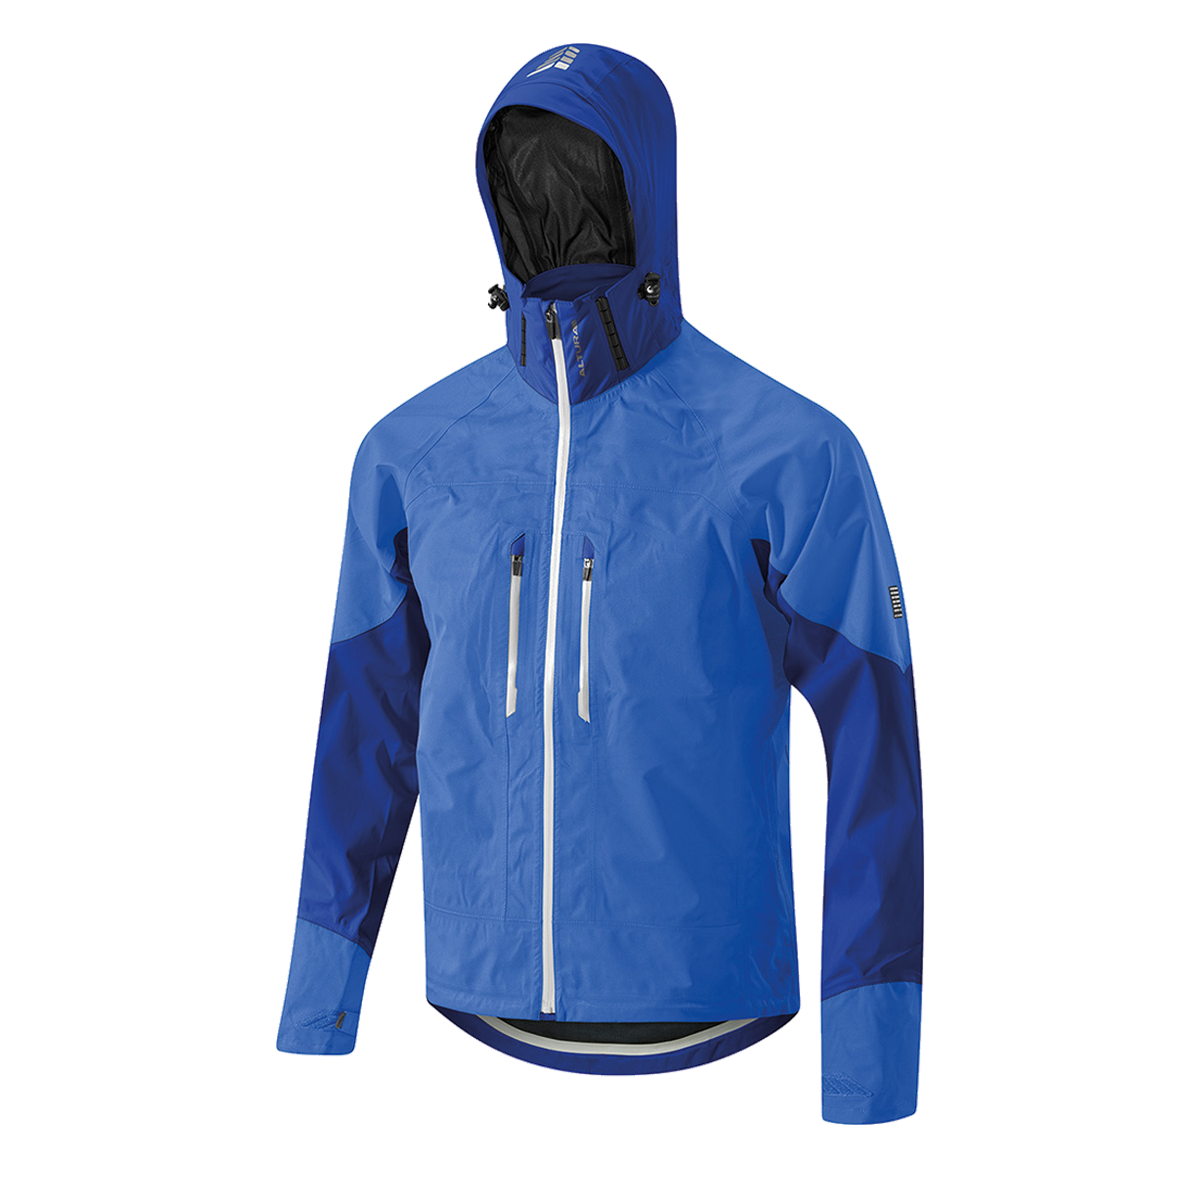 ALTURA ATTACK 360 WATERPROOF JACKET 2016: BLUE L